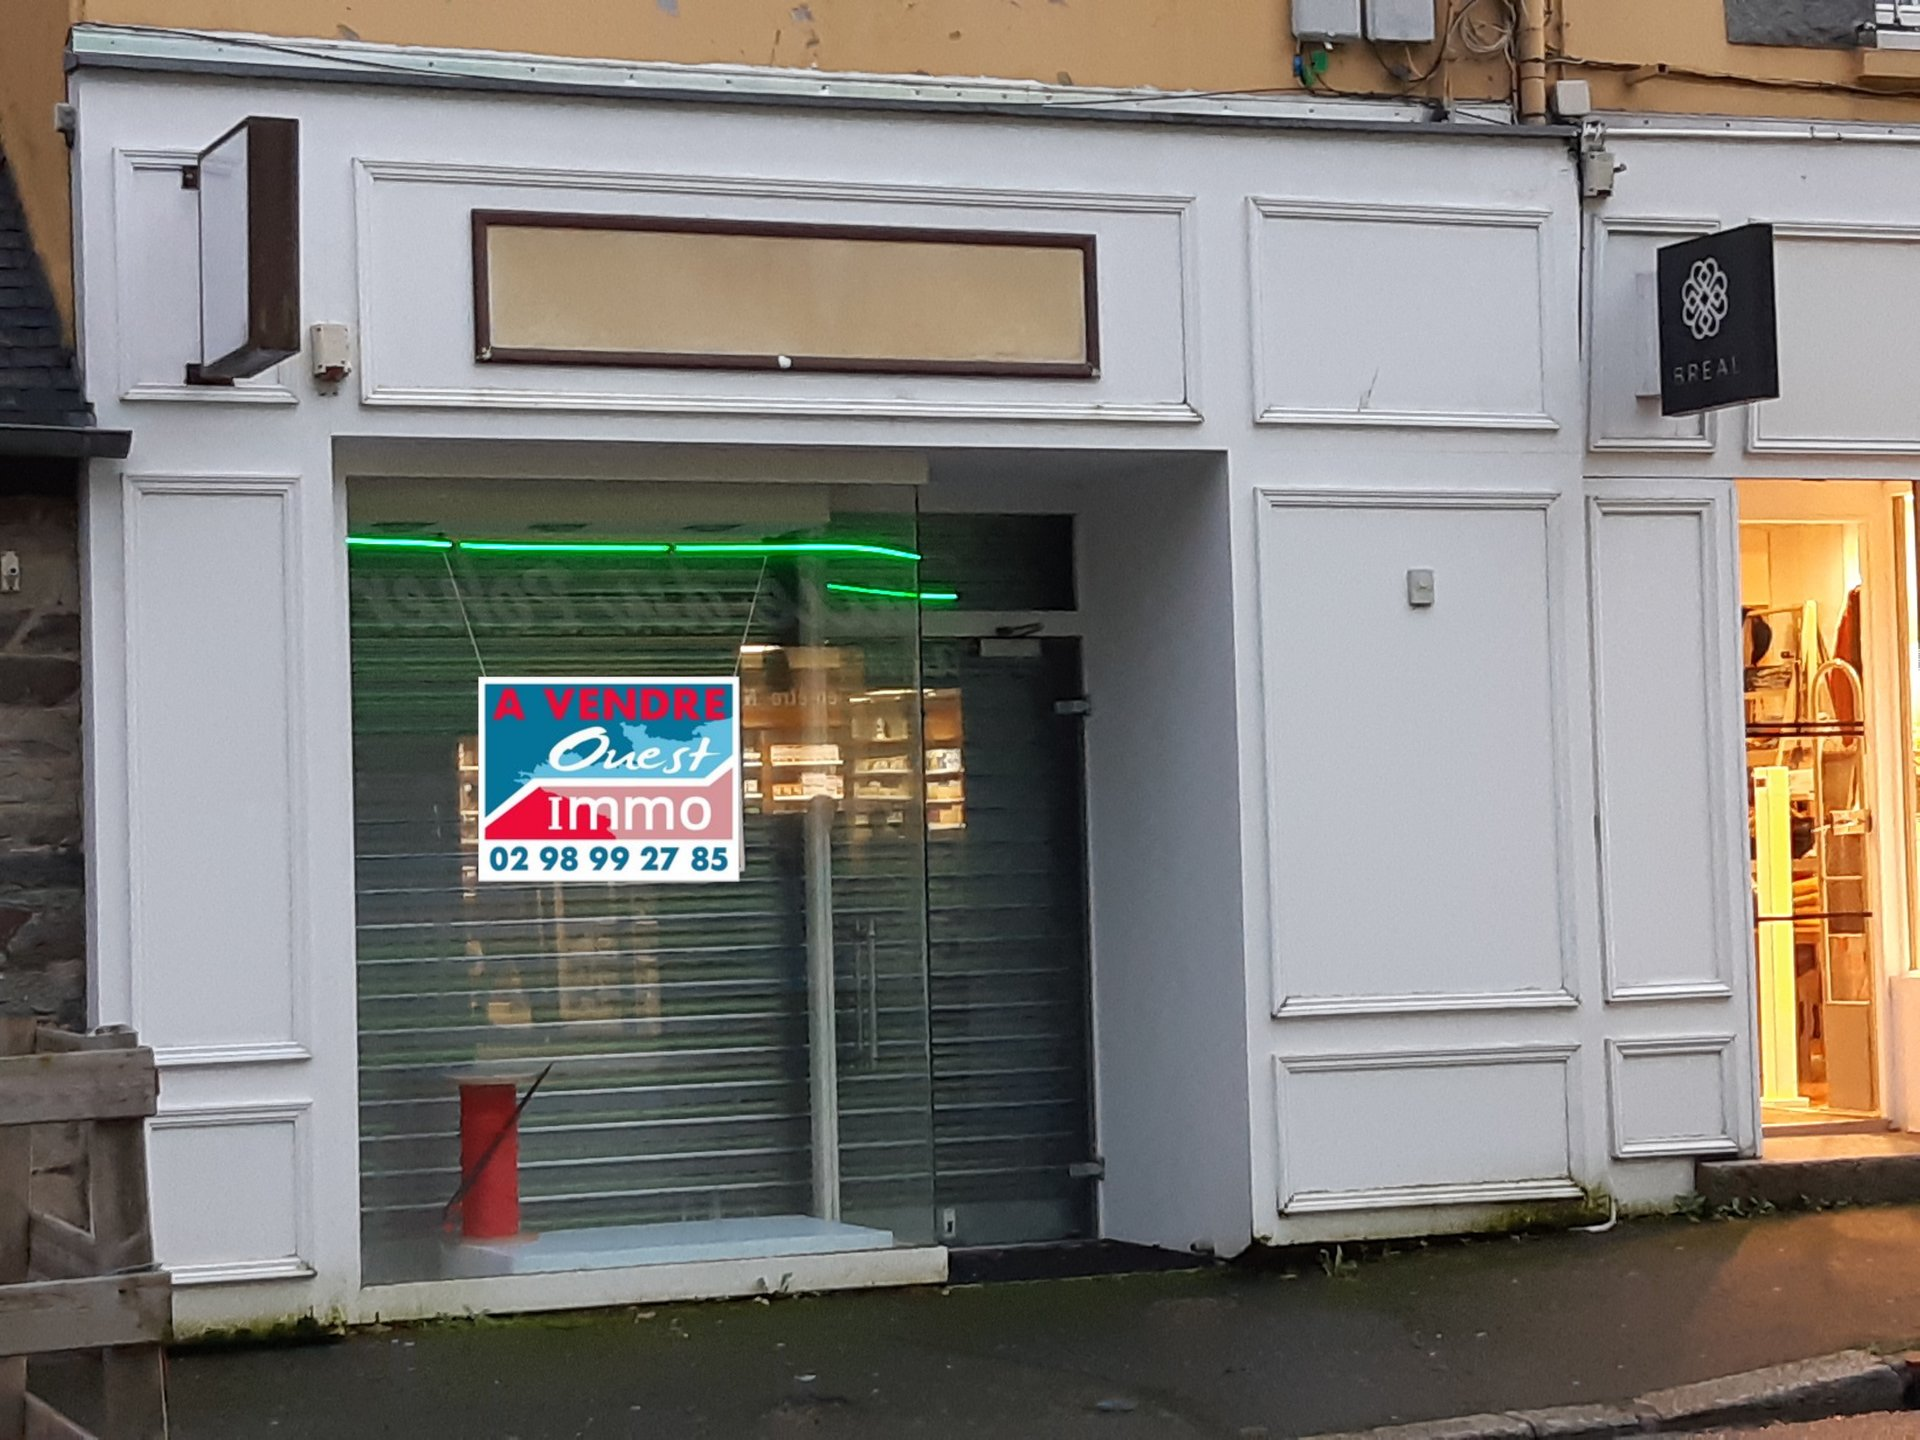 CARHAIX-PLOUGUER  : LOCAL COMMERCIAL